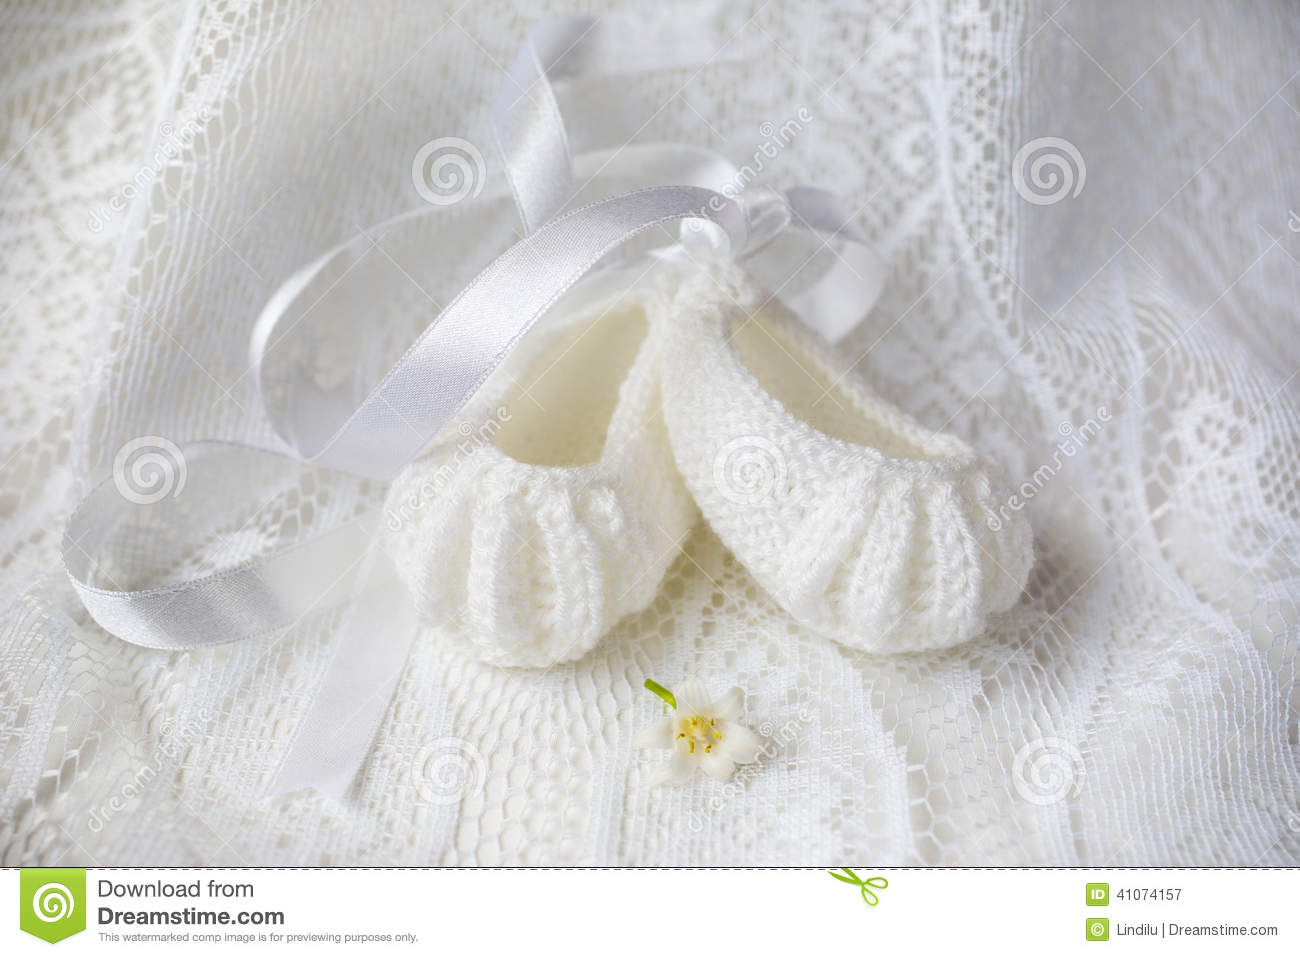 Baby Shoes stock image. Image of